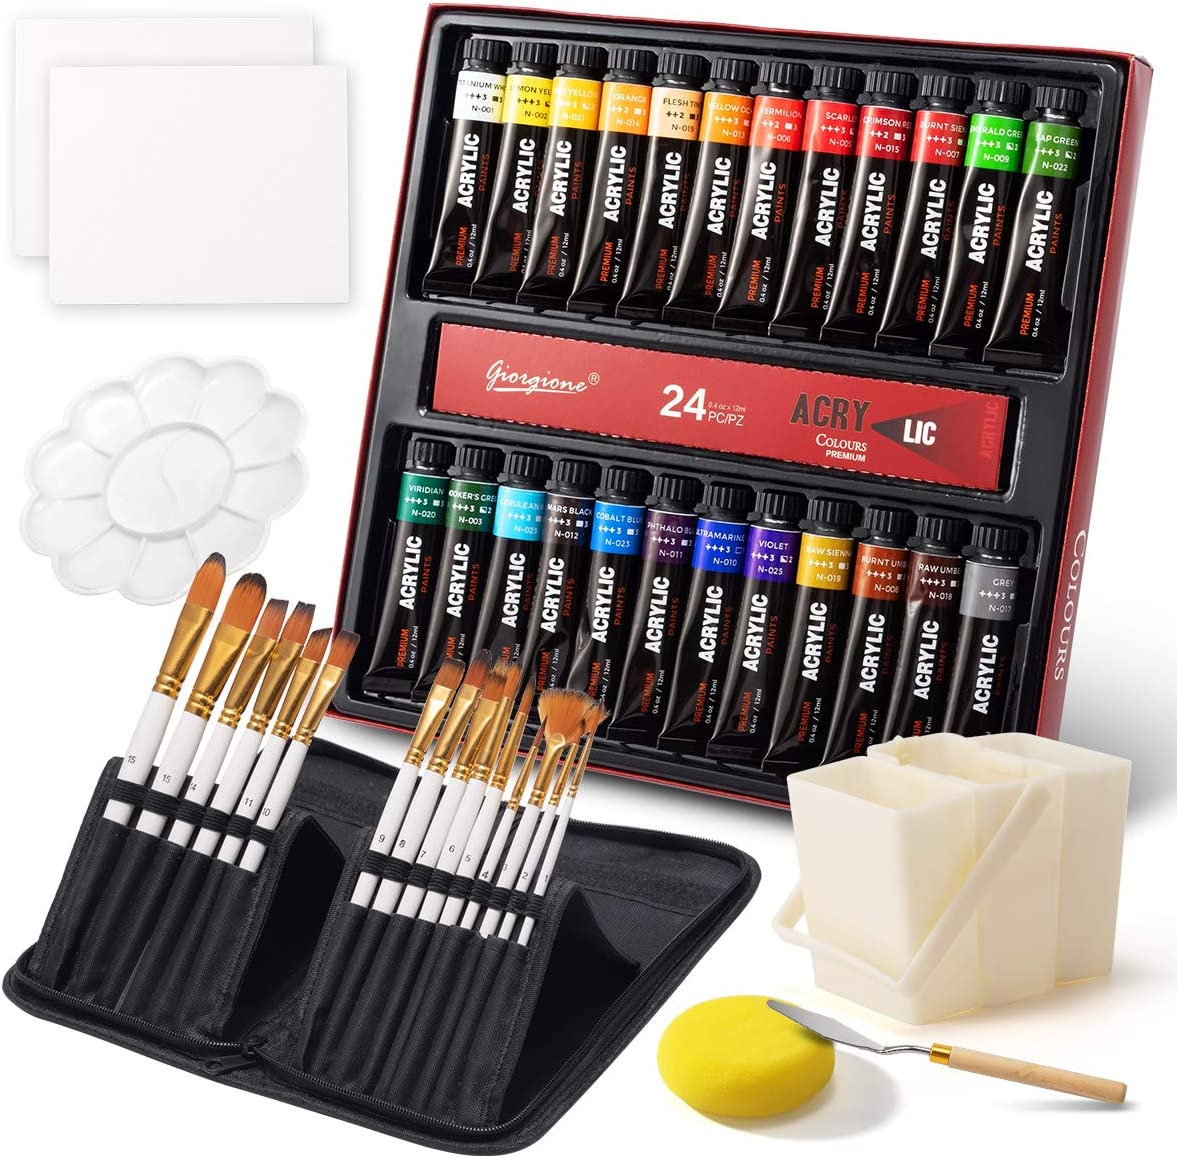 Acrylic Paint Set, 24 Colors (12ml/Tube) Portable Paint Kit with Premium Paint Brushes, Mixing Knife, Paint Pallet and Sponge, Painting Travel Set Arts Crafts Supplies for Kids Adults